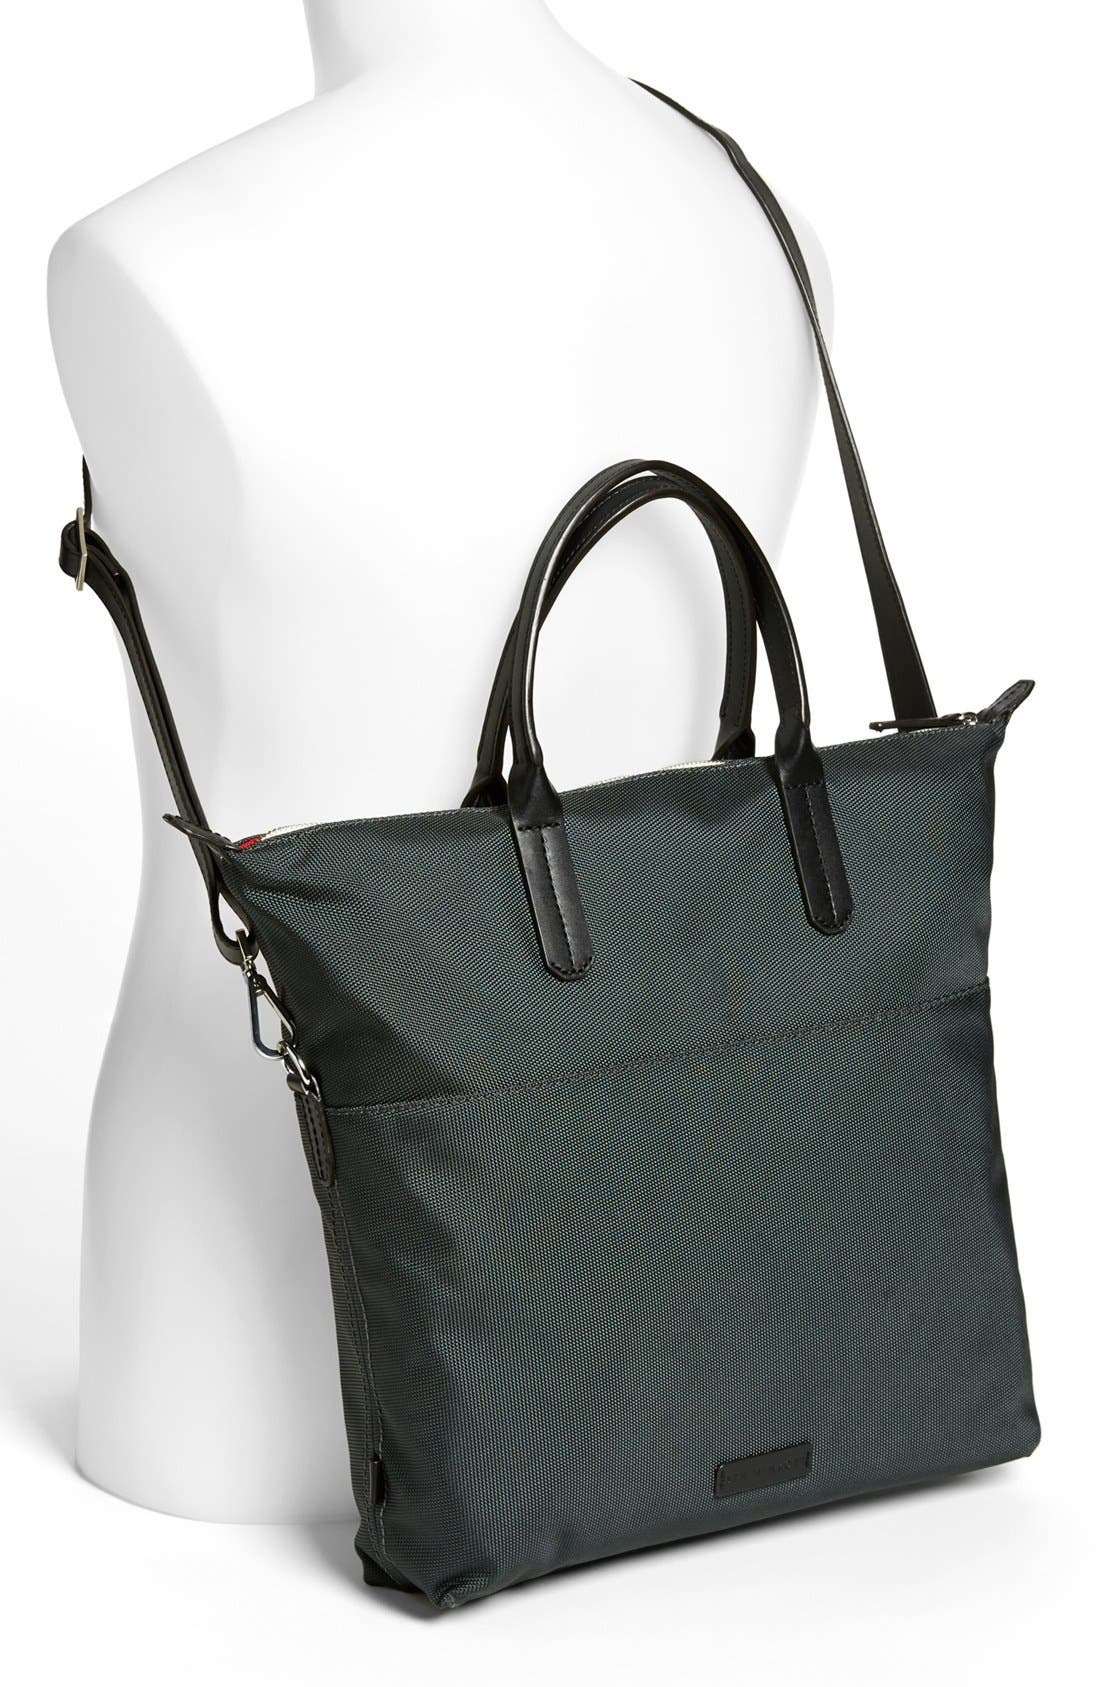 URI MINKOFF, Ben Minkoff 'Heath' Tote Bag, Alternate thumbnail 4, color, 020